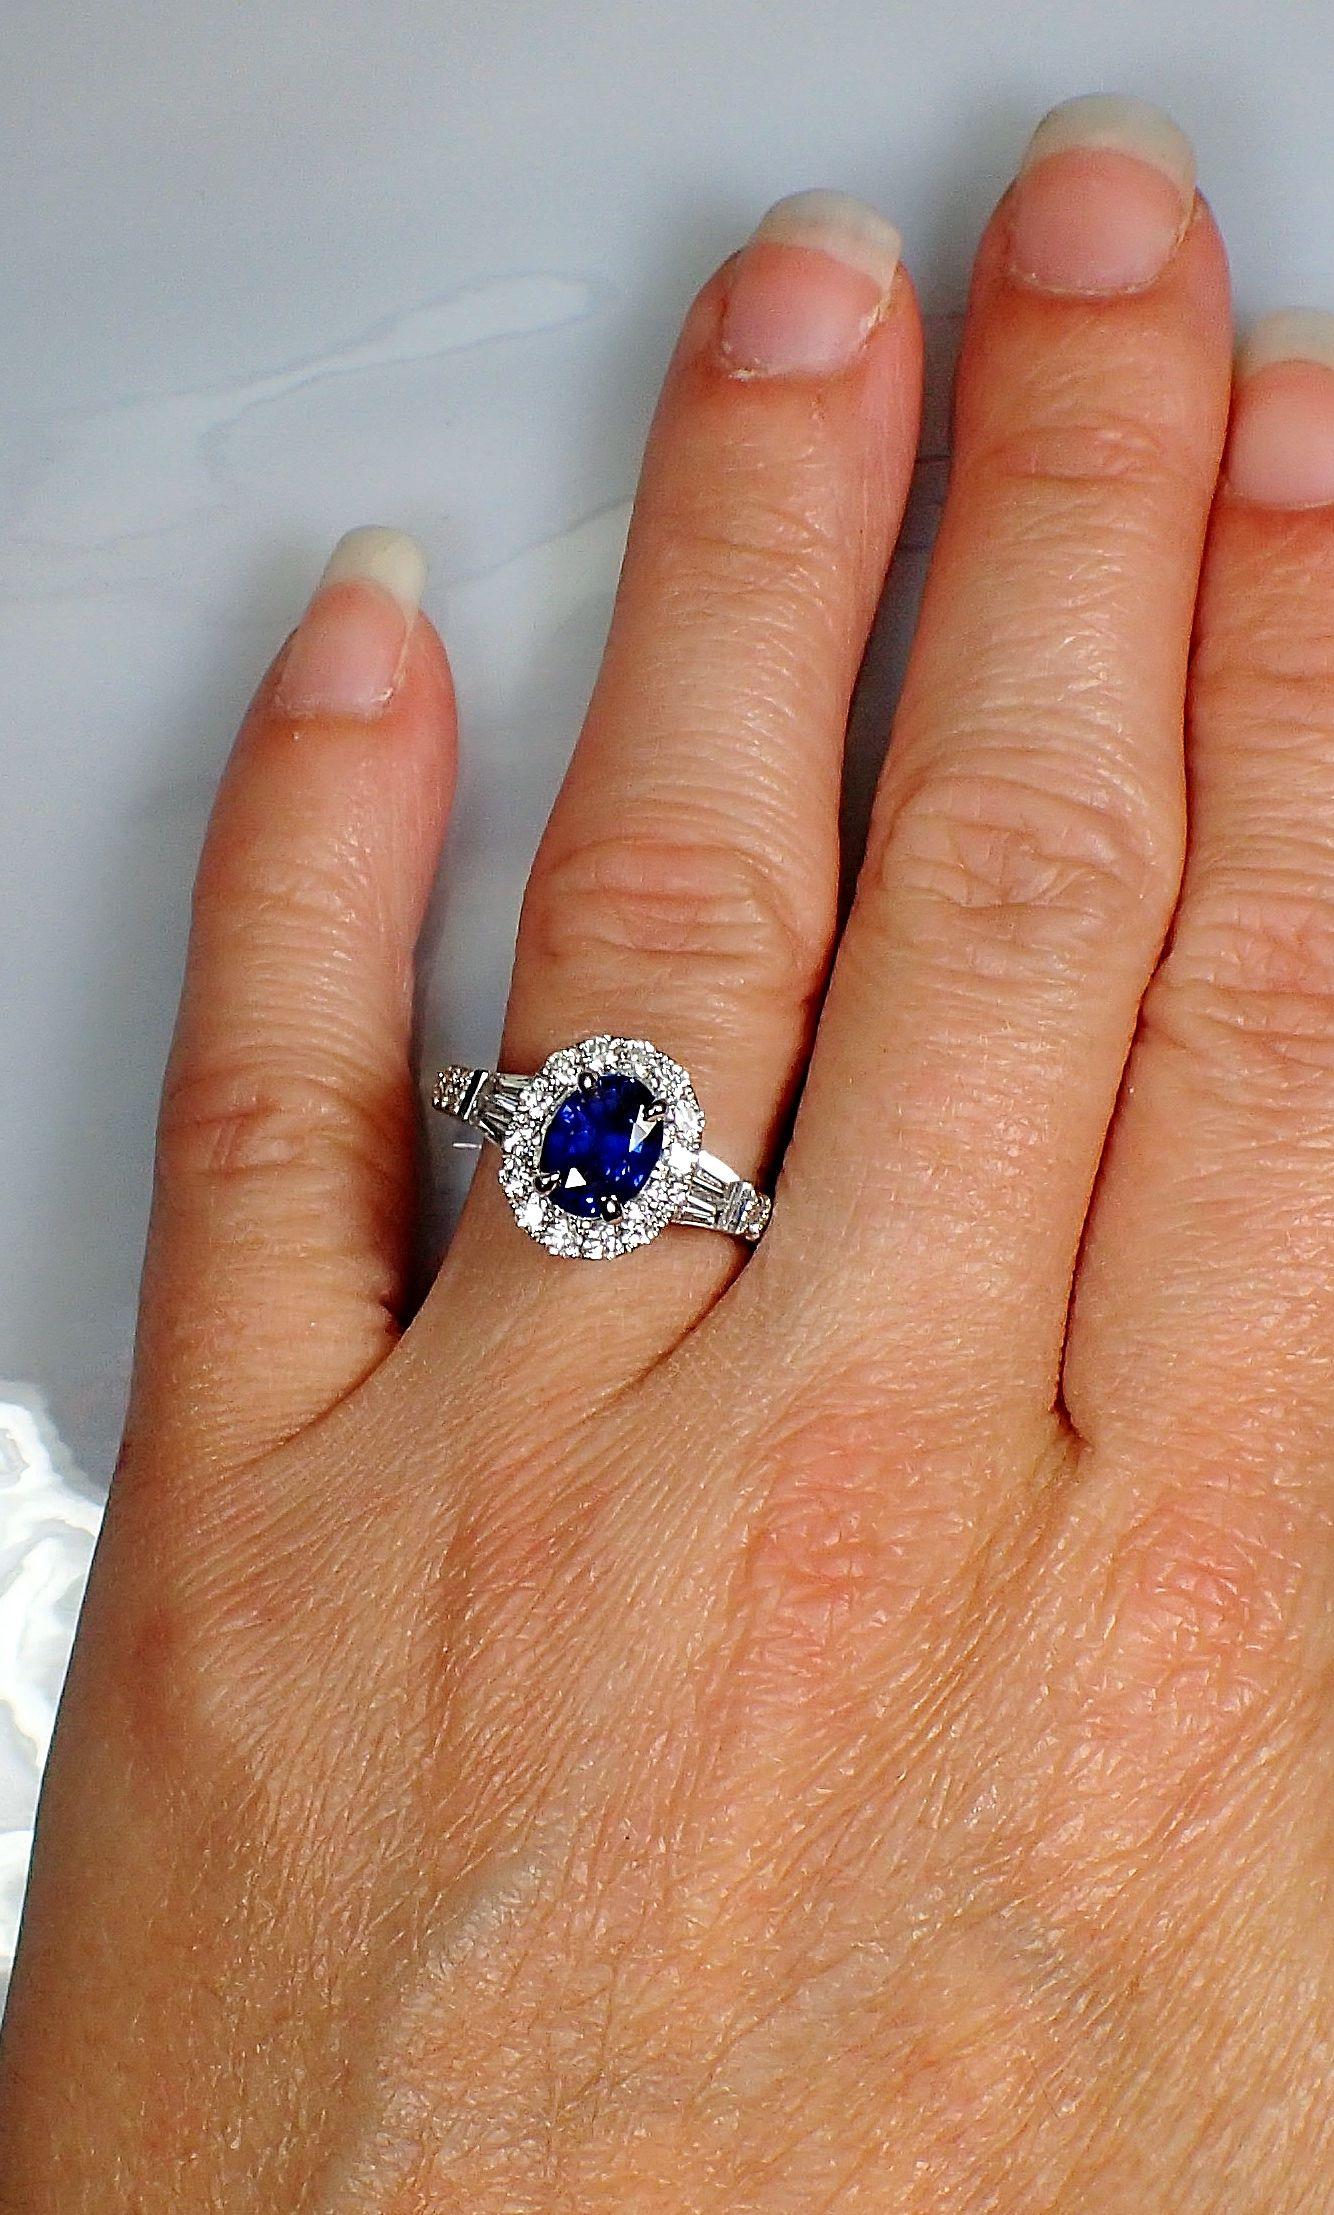 12 Carat Oval Ceylon Sapphire And Diamond Engagement Ring Diamond Engagement Rings Engagement Rings Rings